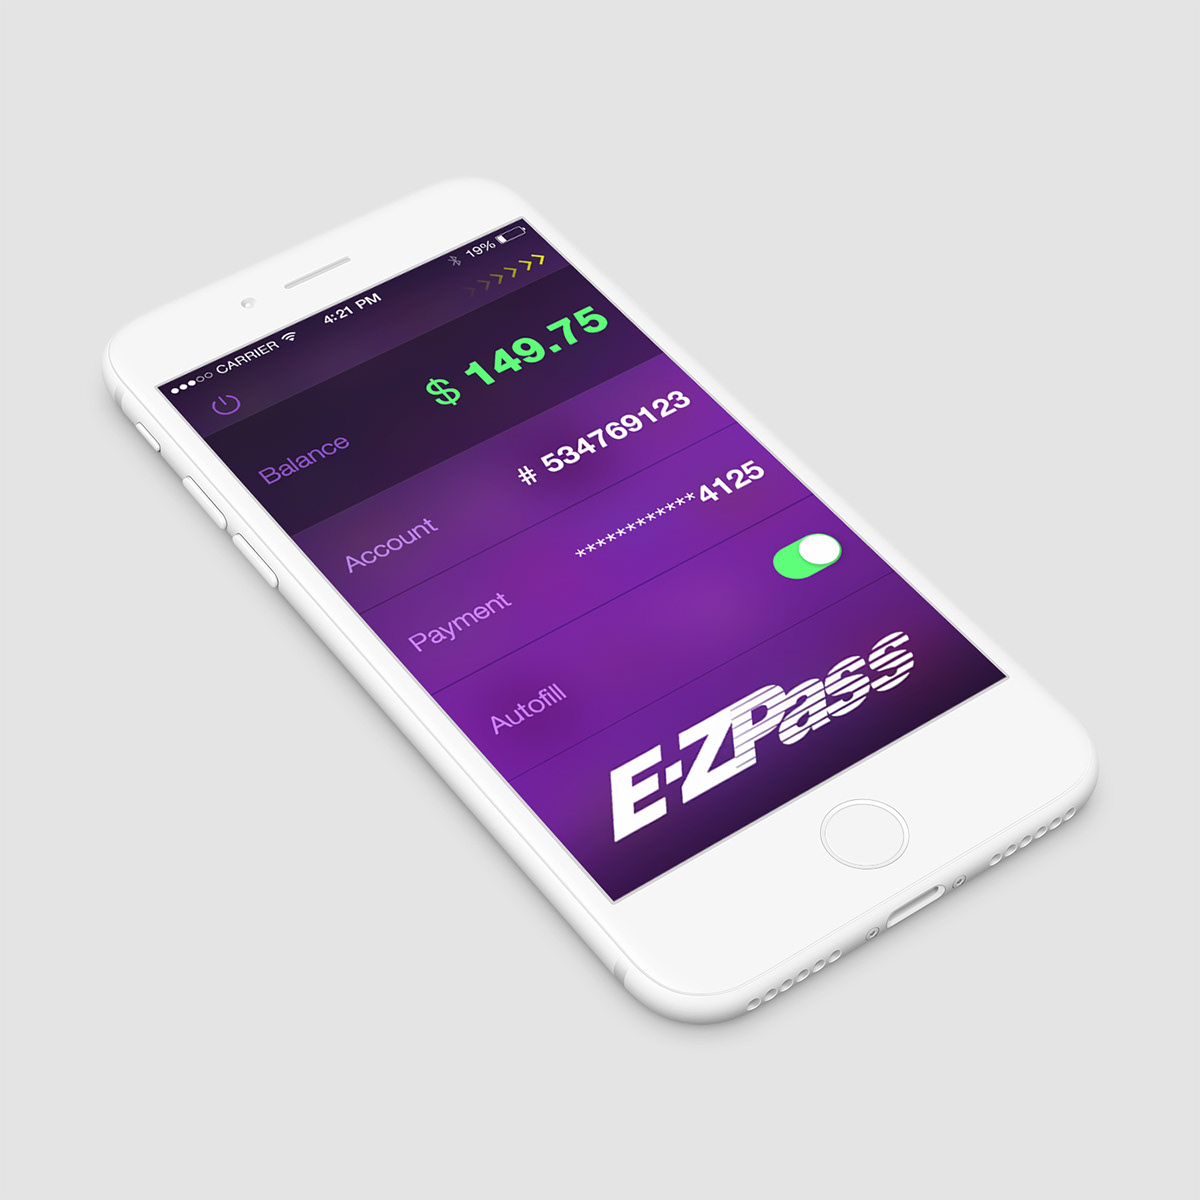 E-ZPass iOS 7 Remix